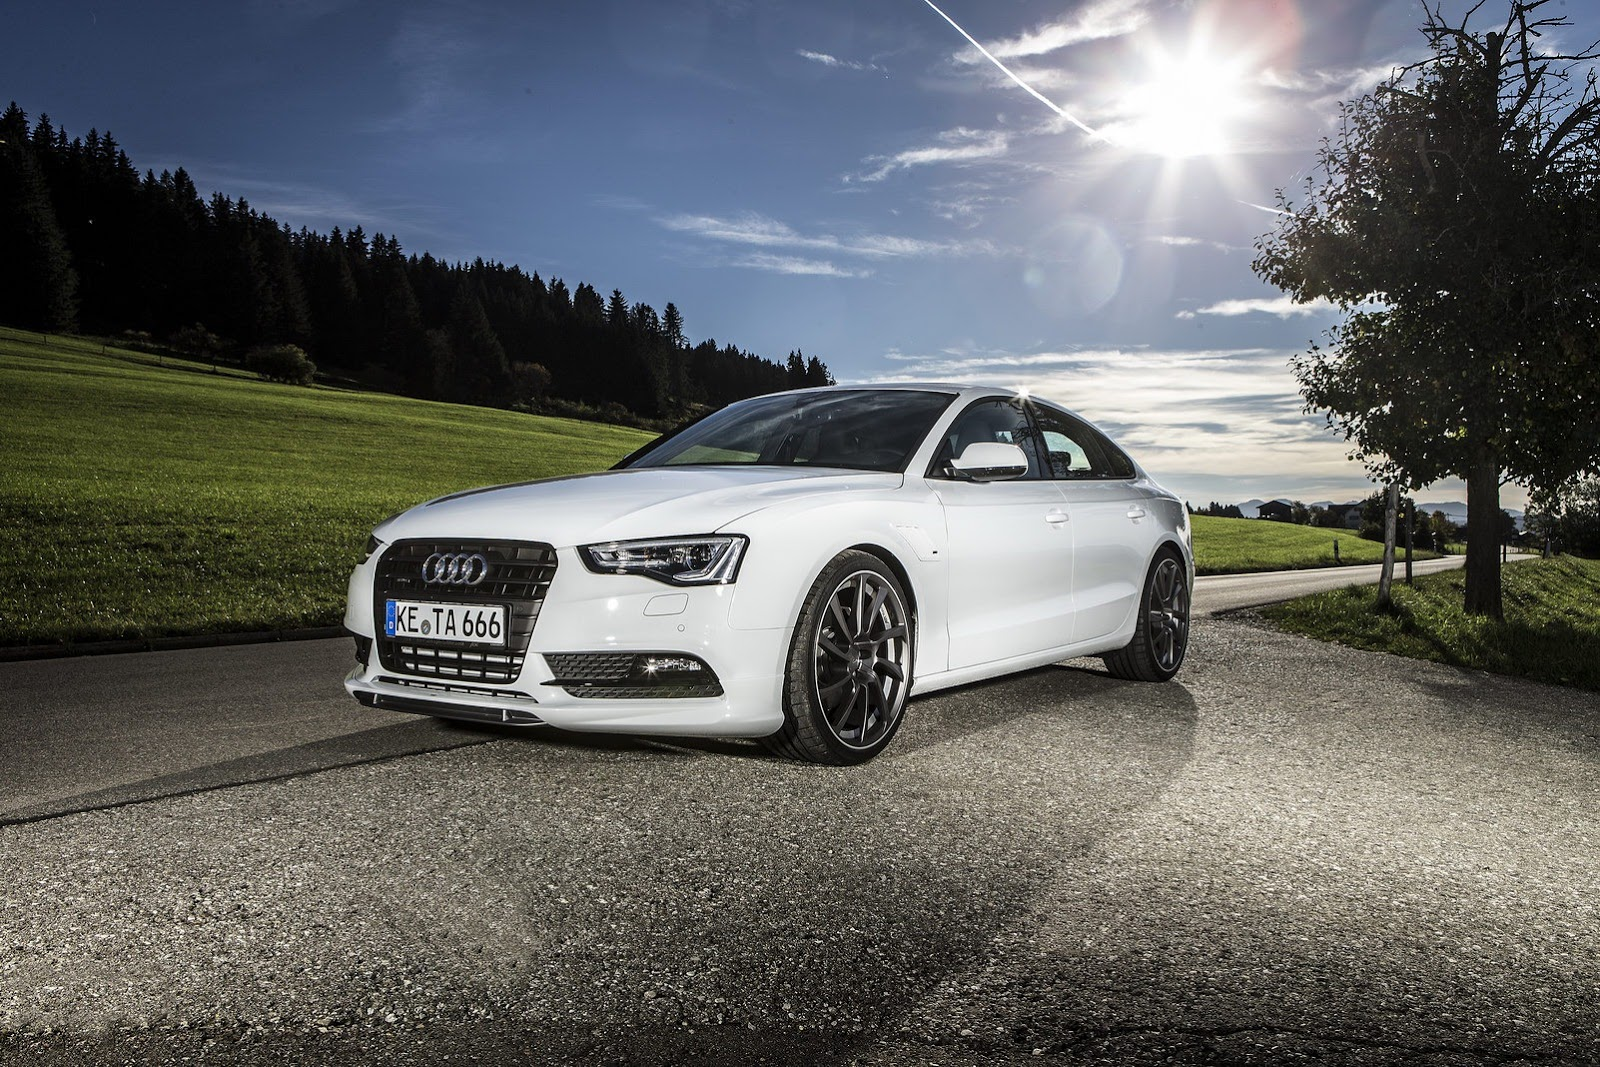 abt tweaks 2013 audi a5 sportback. Black Bedroom Furniture Sets. Home Design Ideas